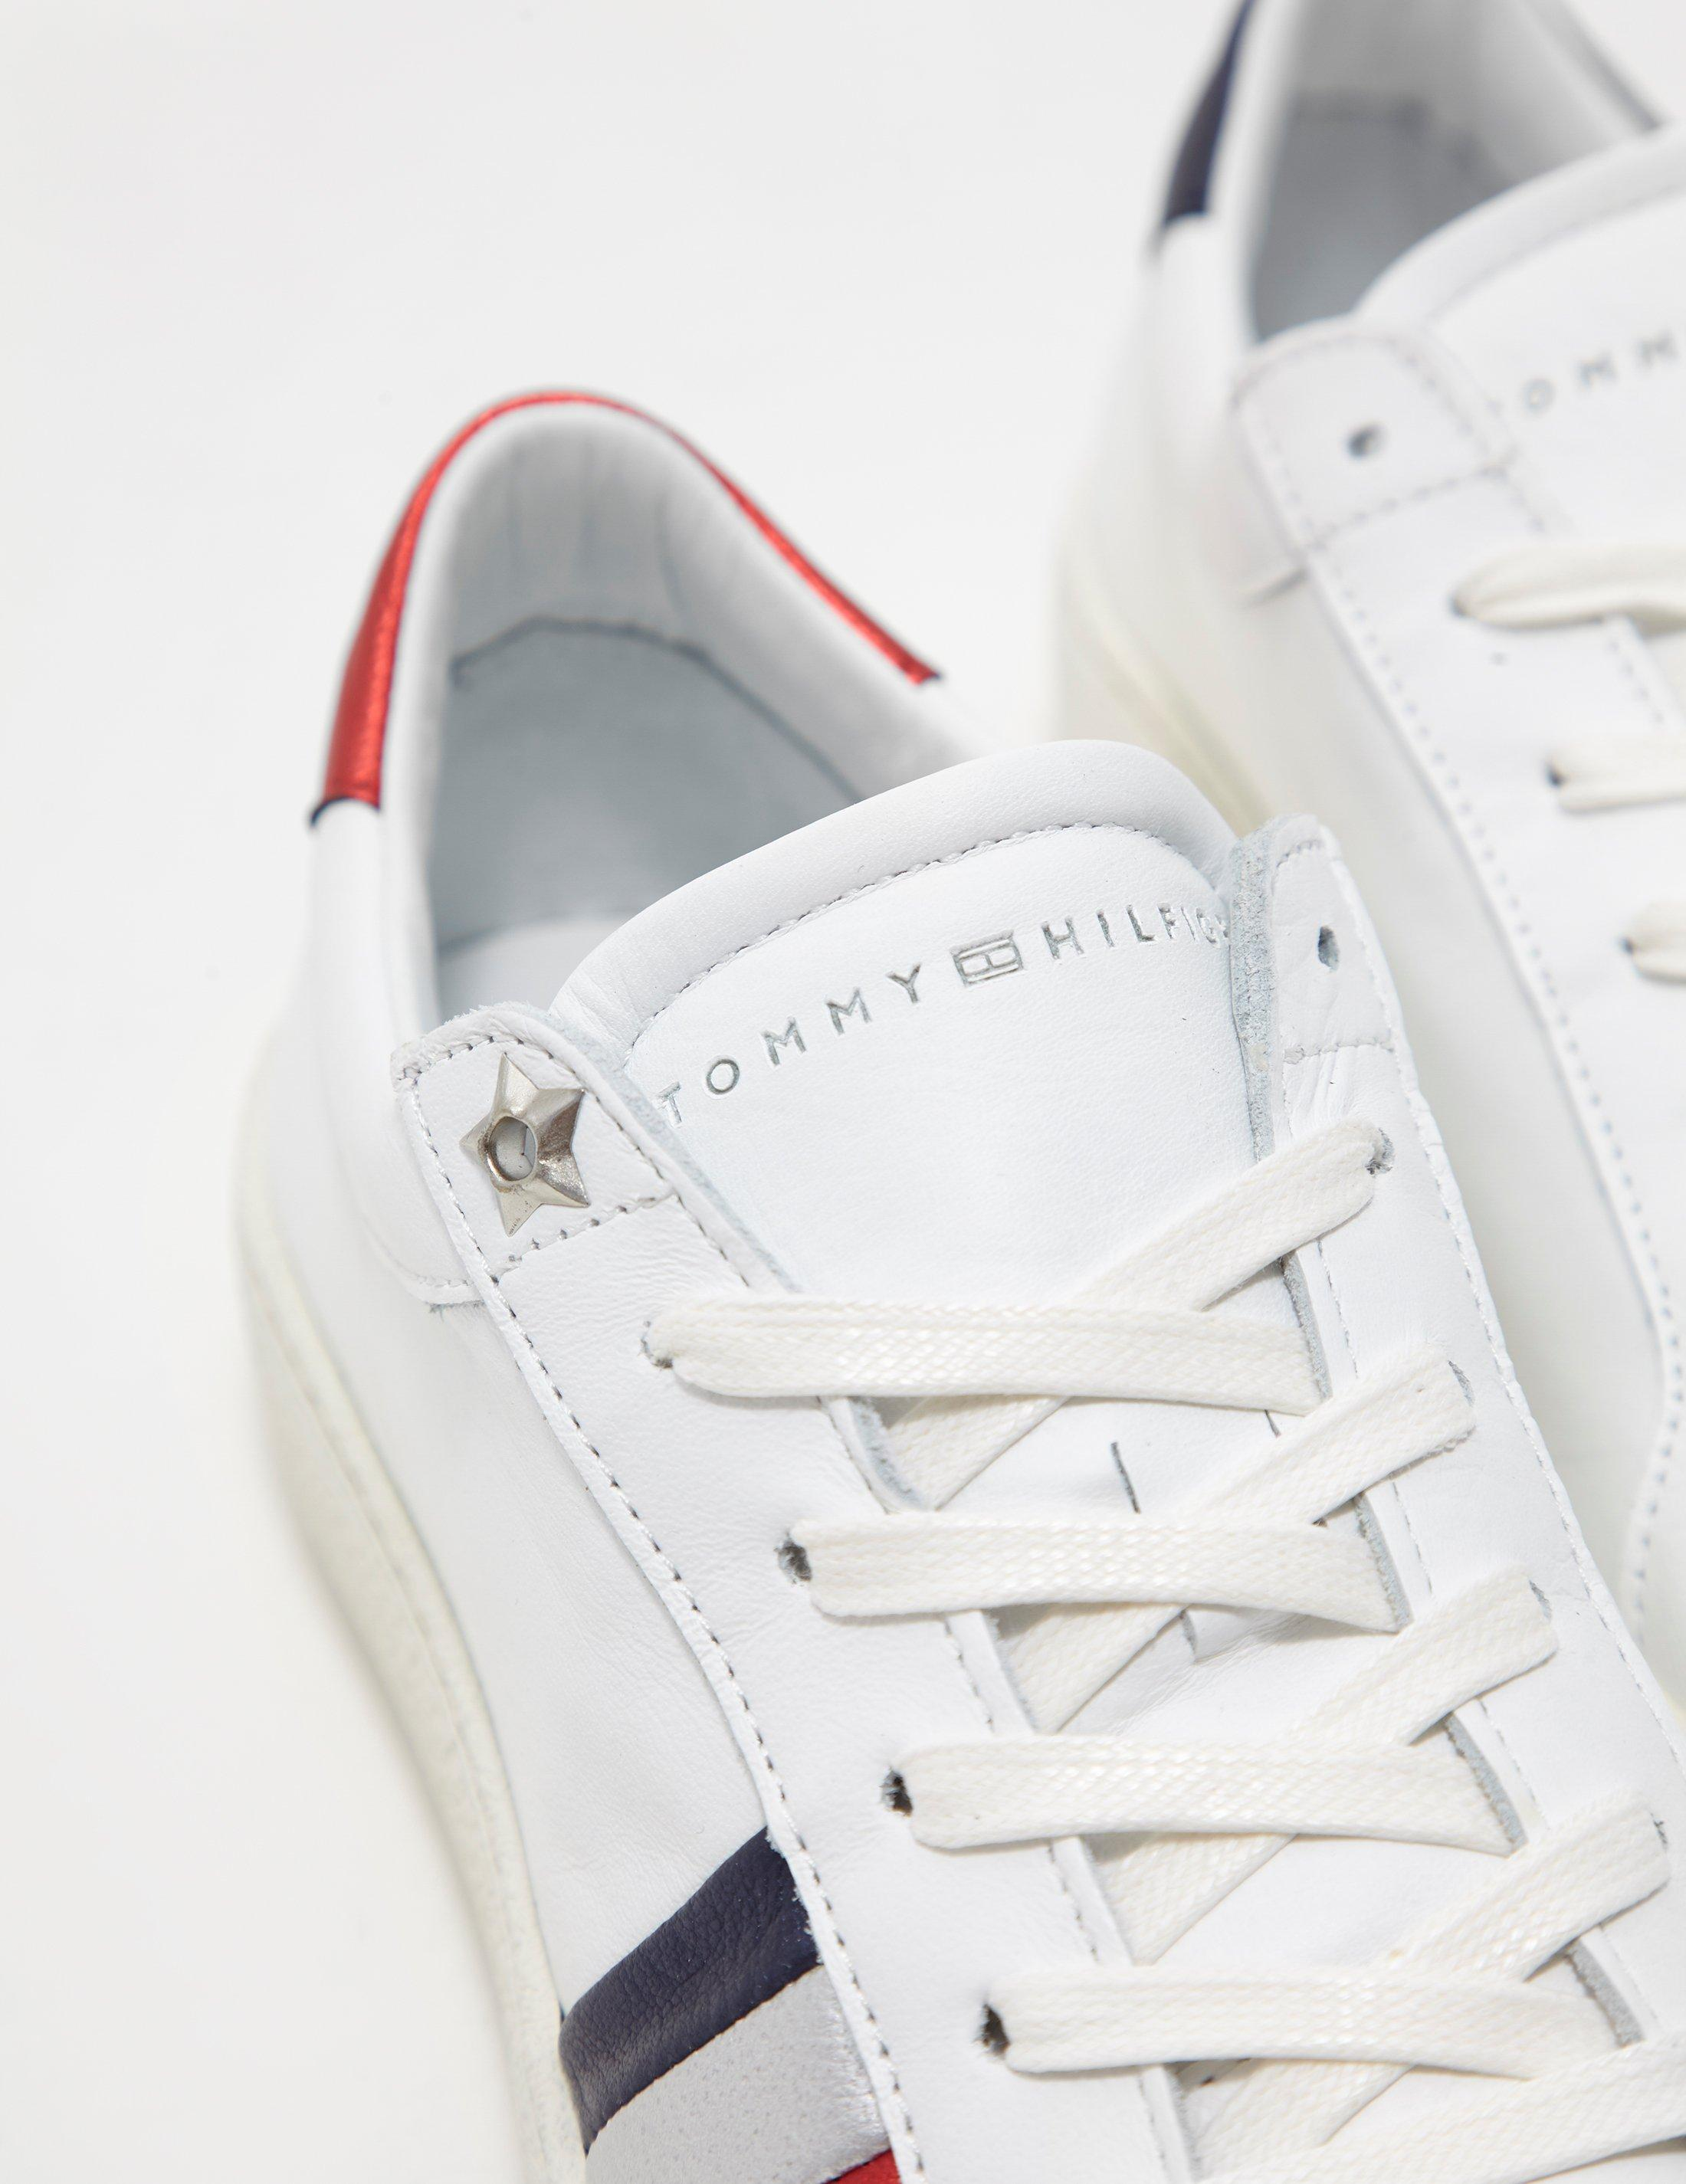 4242913cc Lyst - Tommy Hilfiger Iconic Sneaker - Online Exclusive White in White -  Save 43%